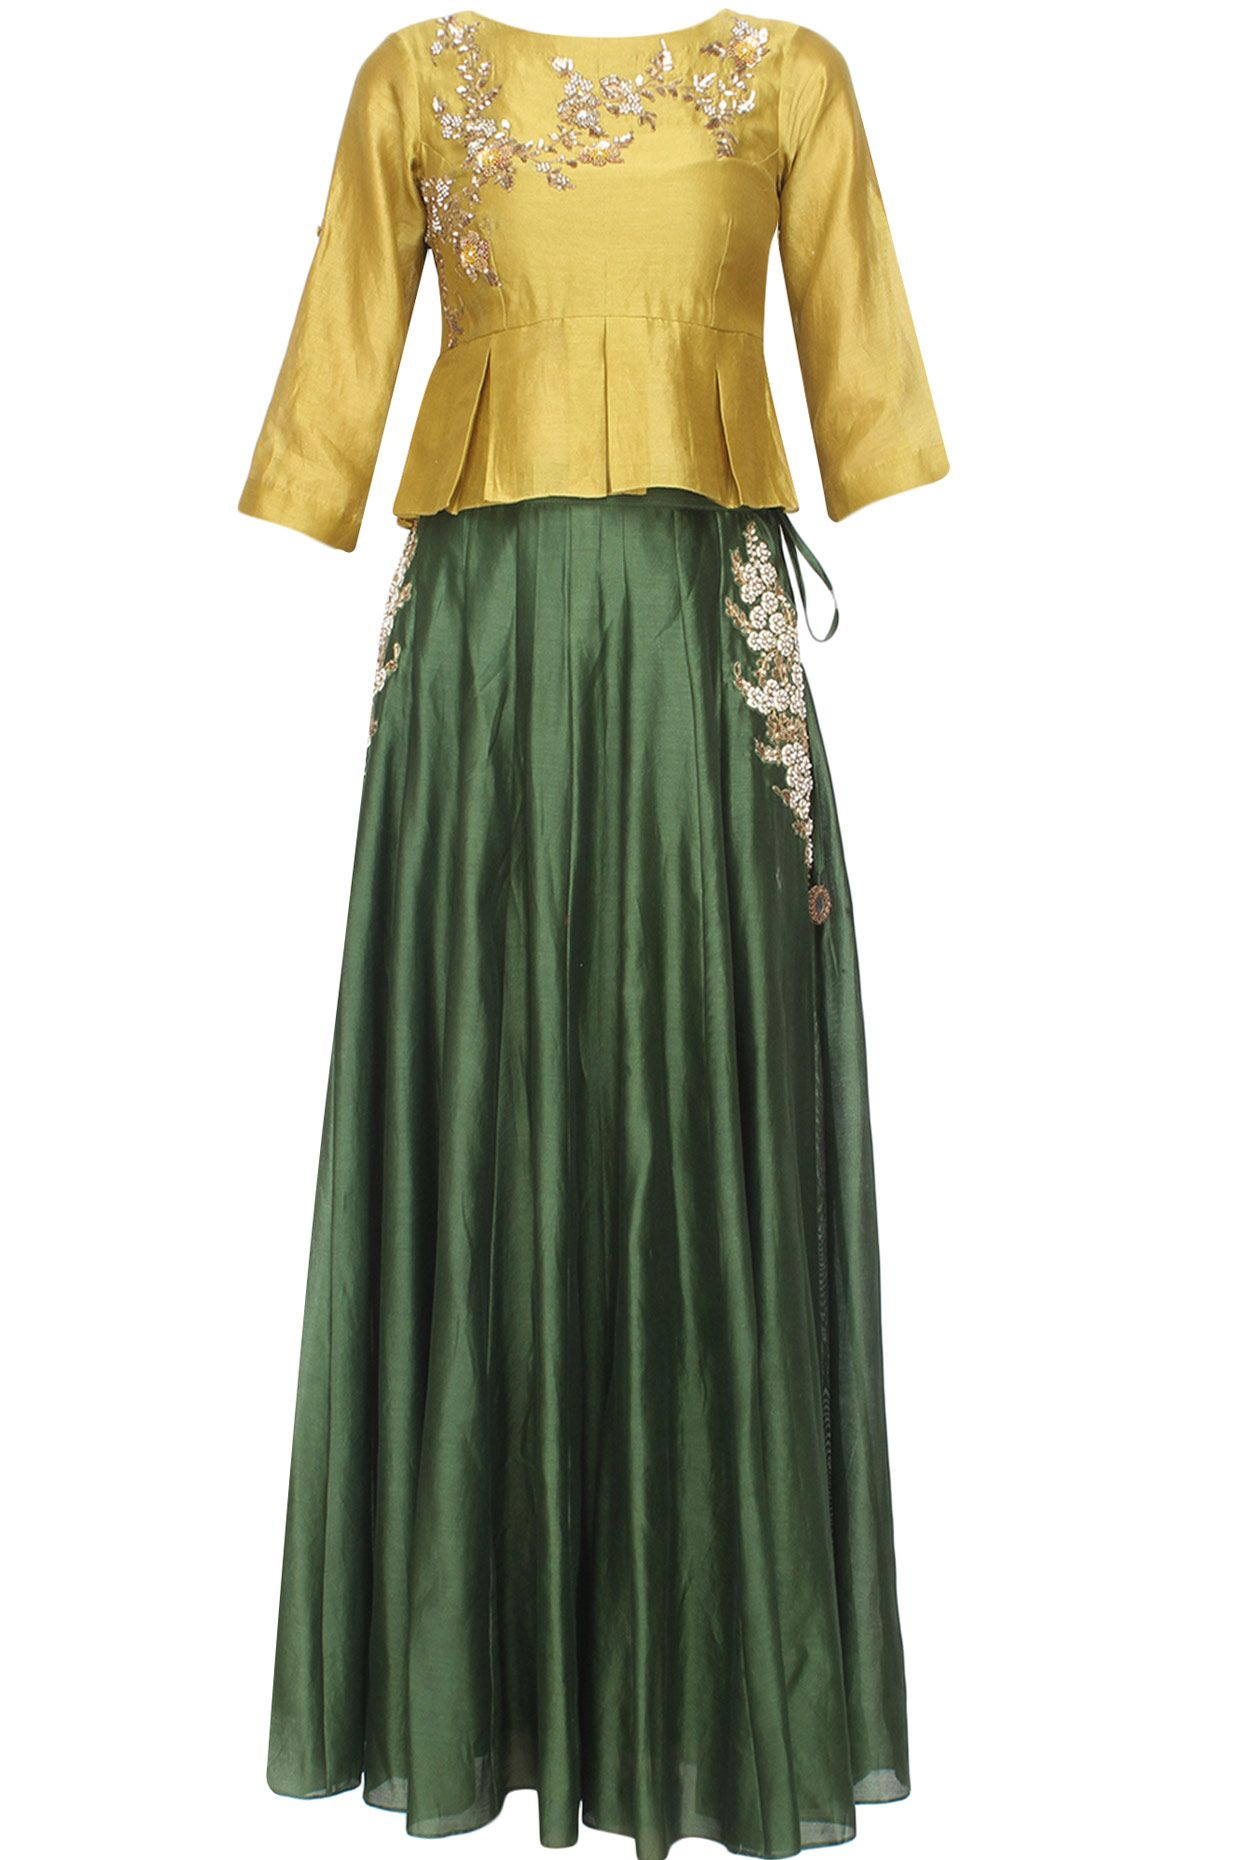 c28f91e9cc9d5b Mustard floral embroidered peplum top and green skirt set available only at  Pernia s Pop Up Shop.